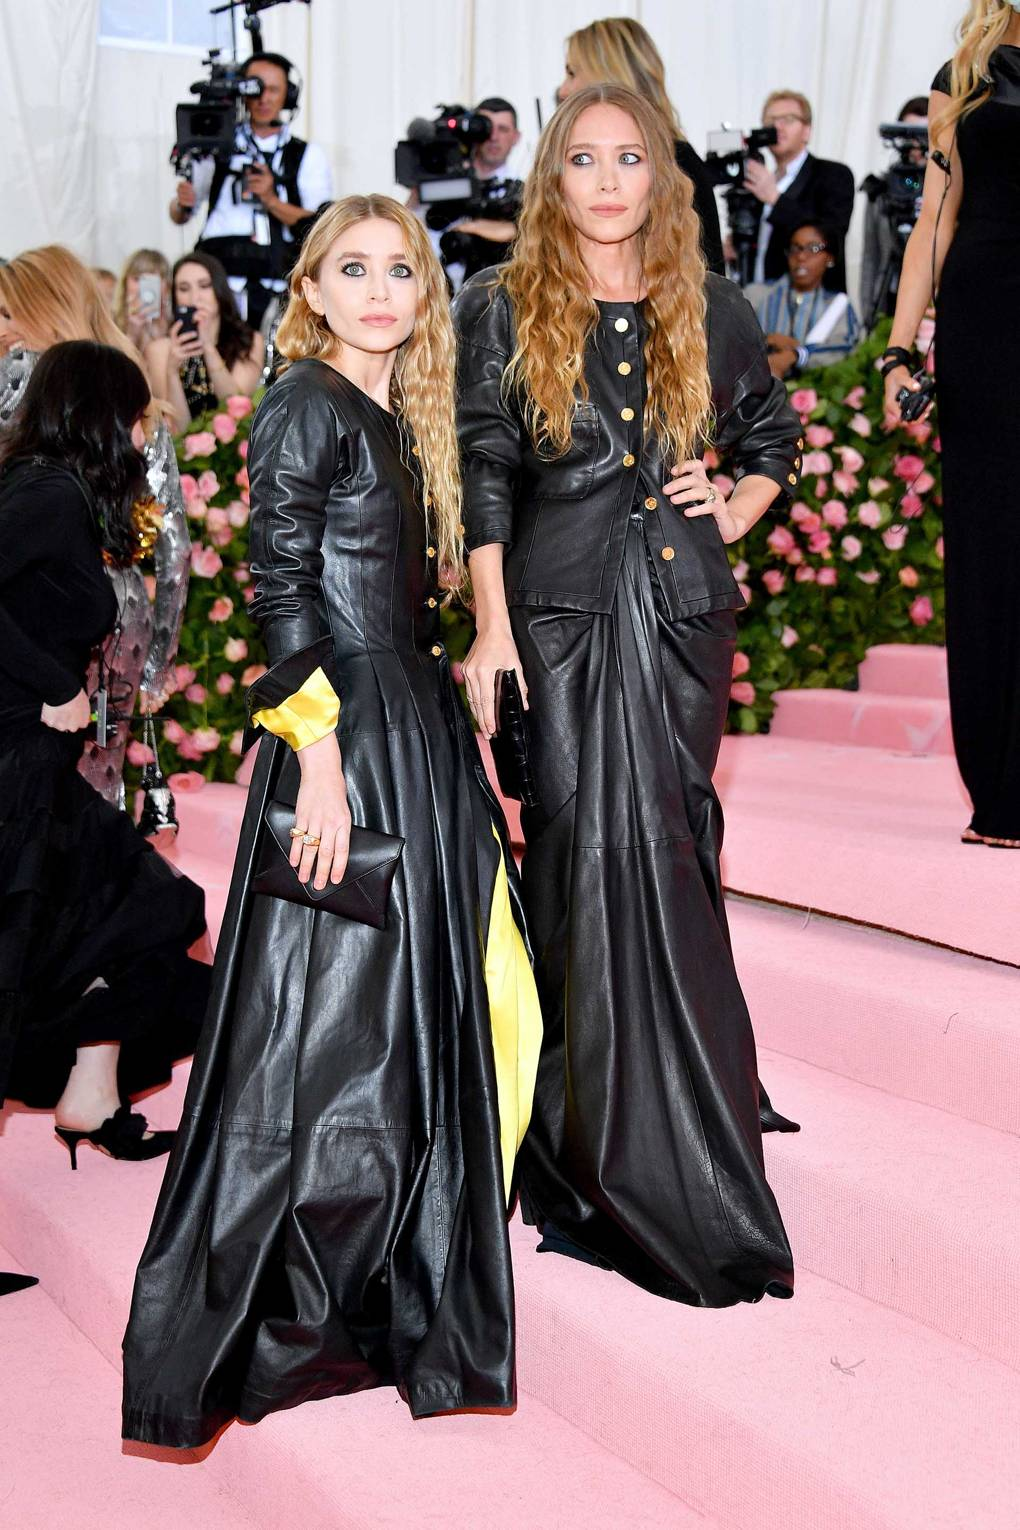 Mary-Kate and Ashley Olsen wearing vintage Chanel - Two looks not loved by many however the Olsen twins truly know fashion and always commit to styles that are technically interesting opposed to the latest trends. Yes i am a fan of The Row! I must say these are not looks I would or could wear however I have a huge appreciation for the girls pulling off this look in such a glamours and dare I say elegant way. I'm not a fan of the yellow satin lining however the pleating, cinched waists and controlled draping all incorporated into long-length leather dresses really screams camp in a whole different way!